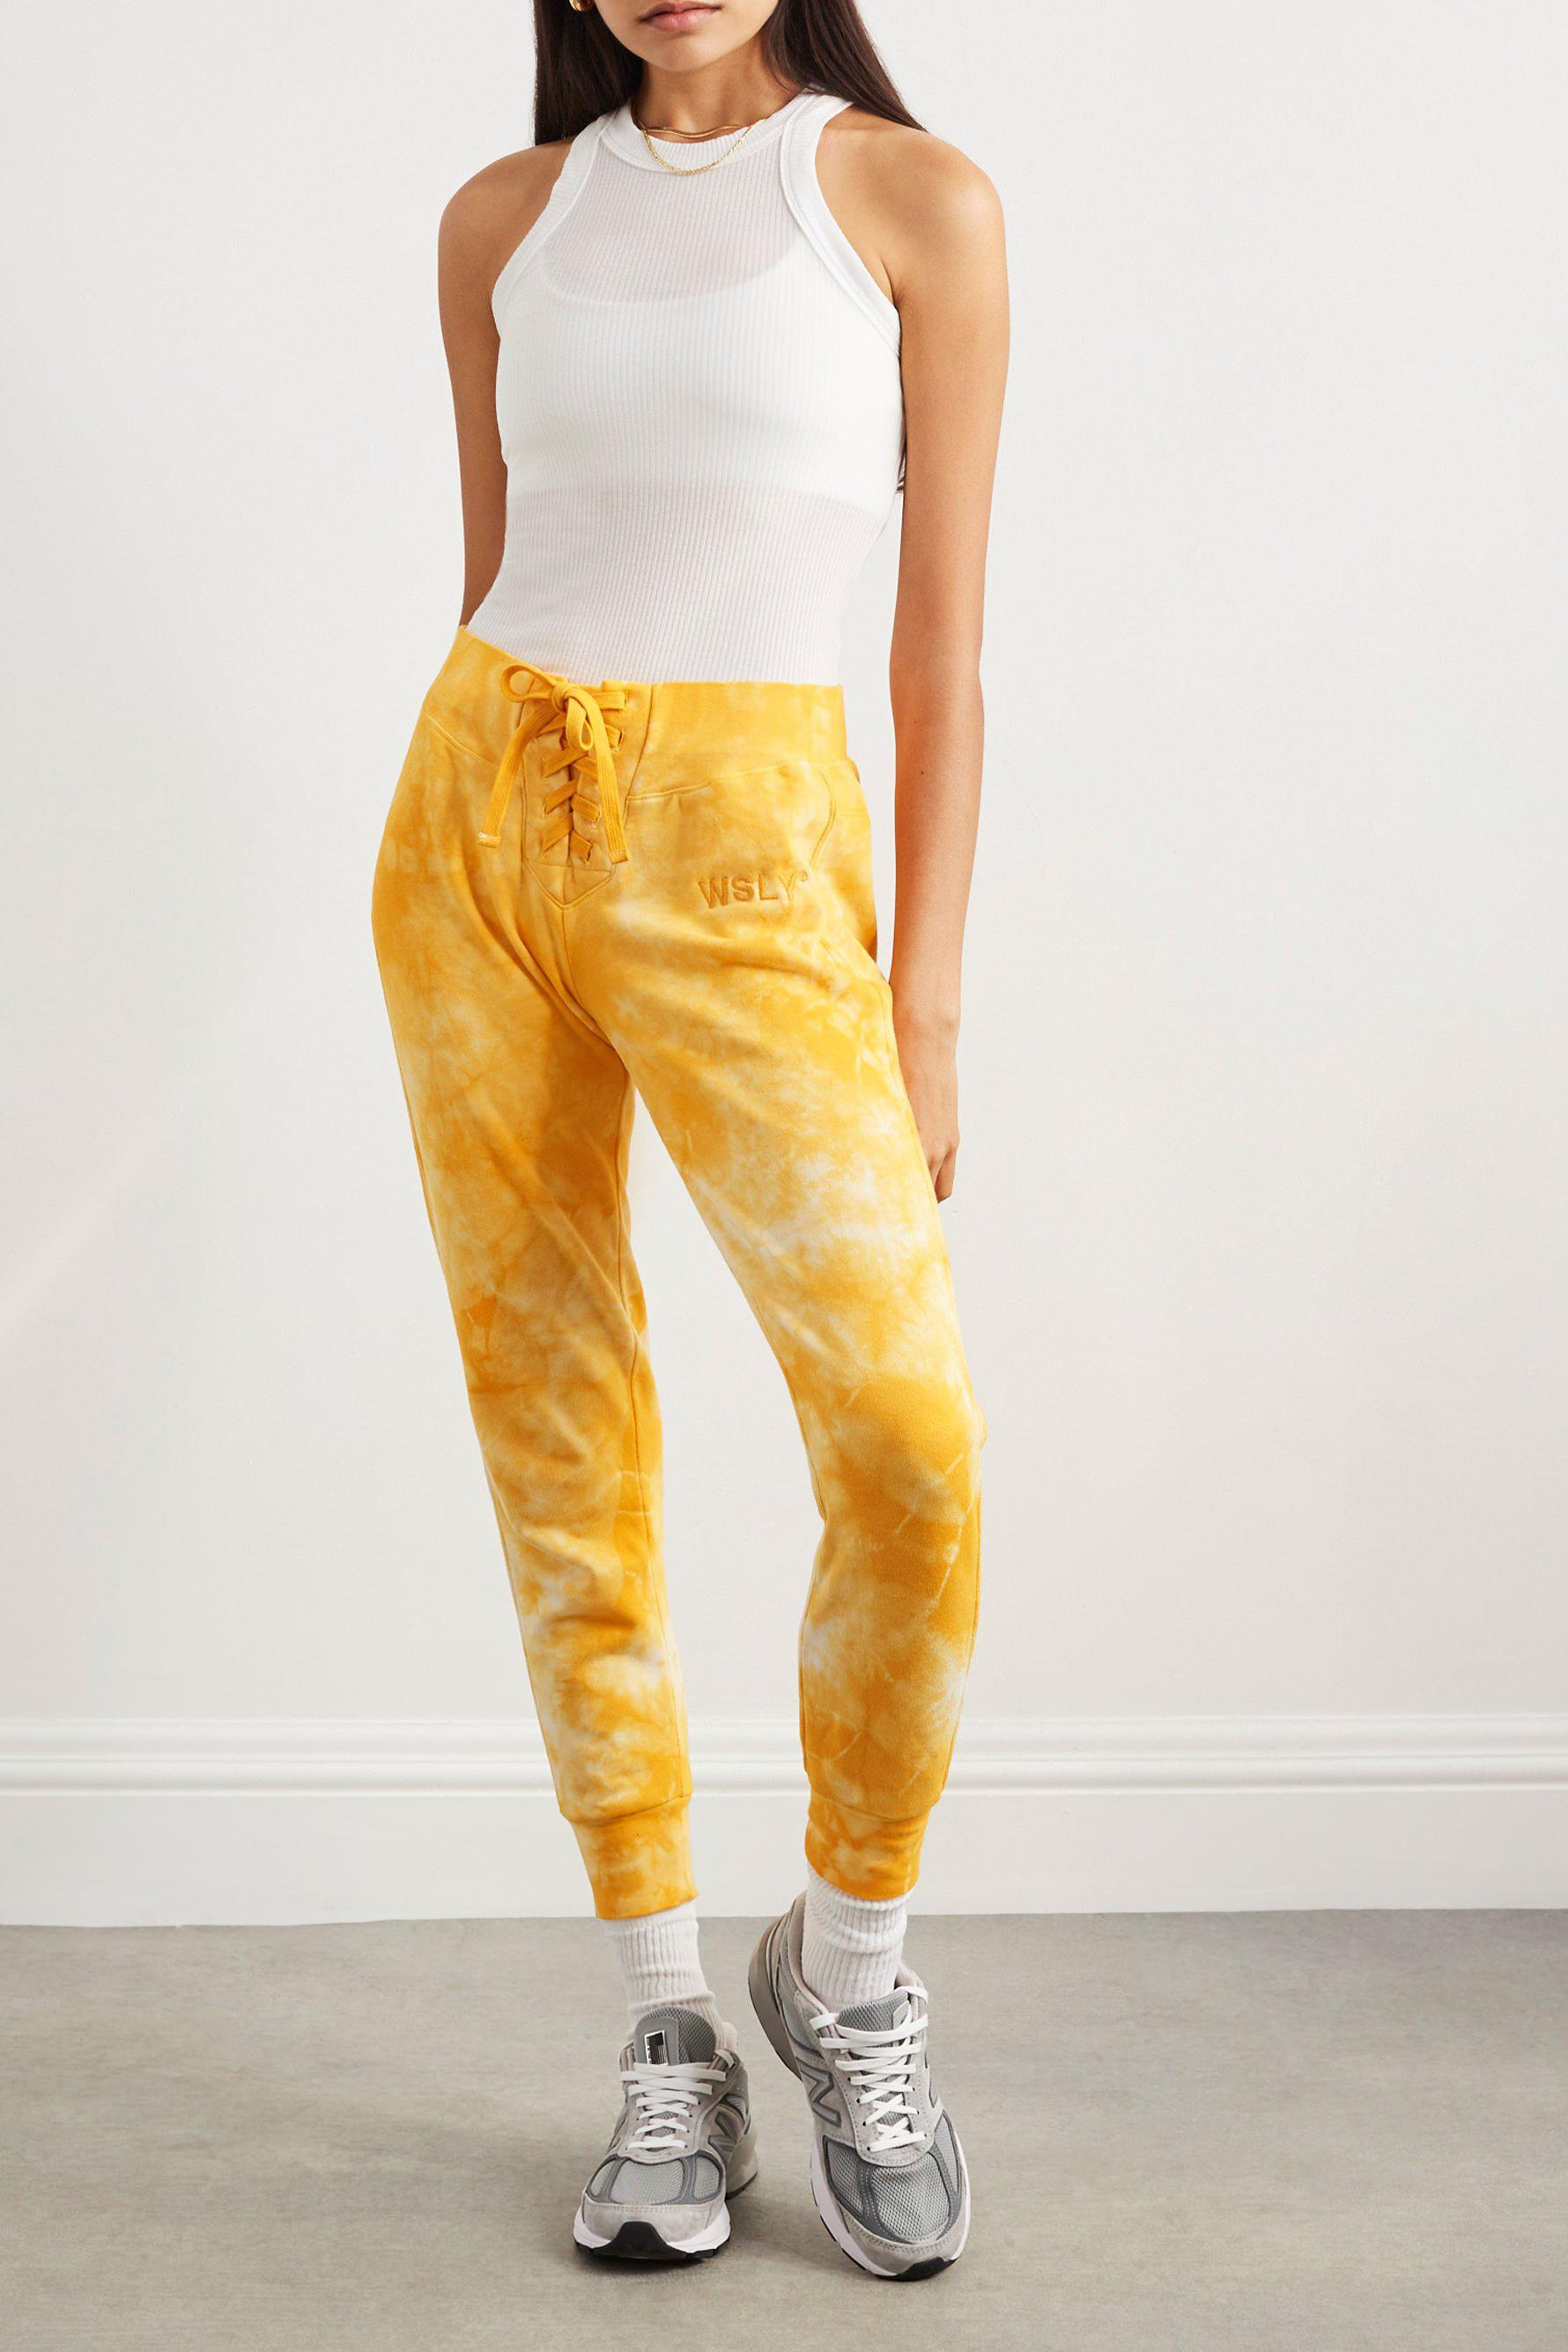 The Ecosoft Tie Up Jogger 6